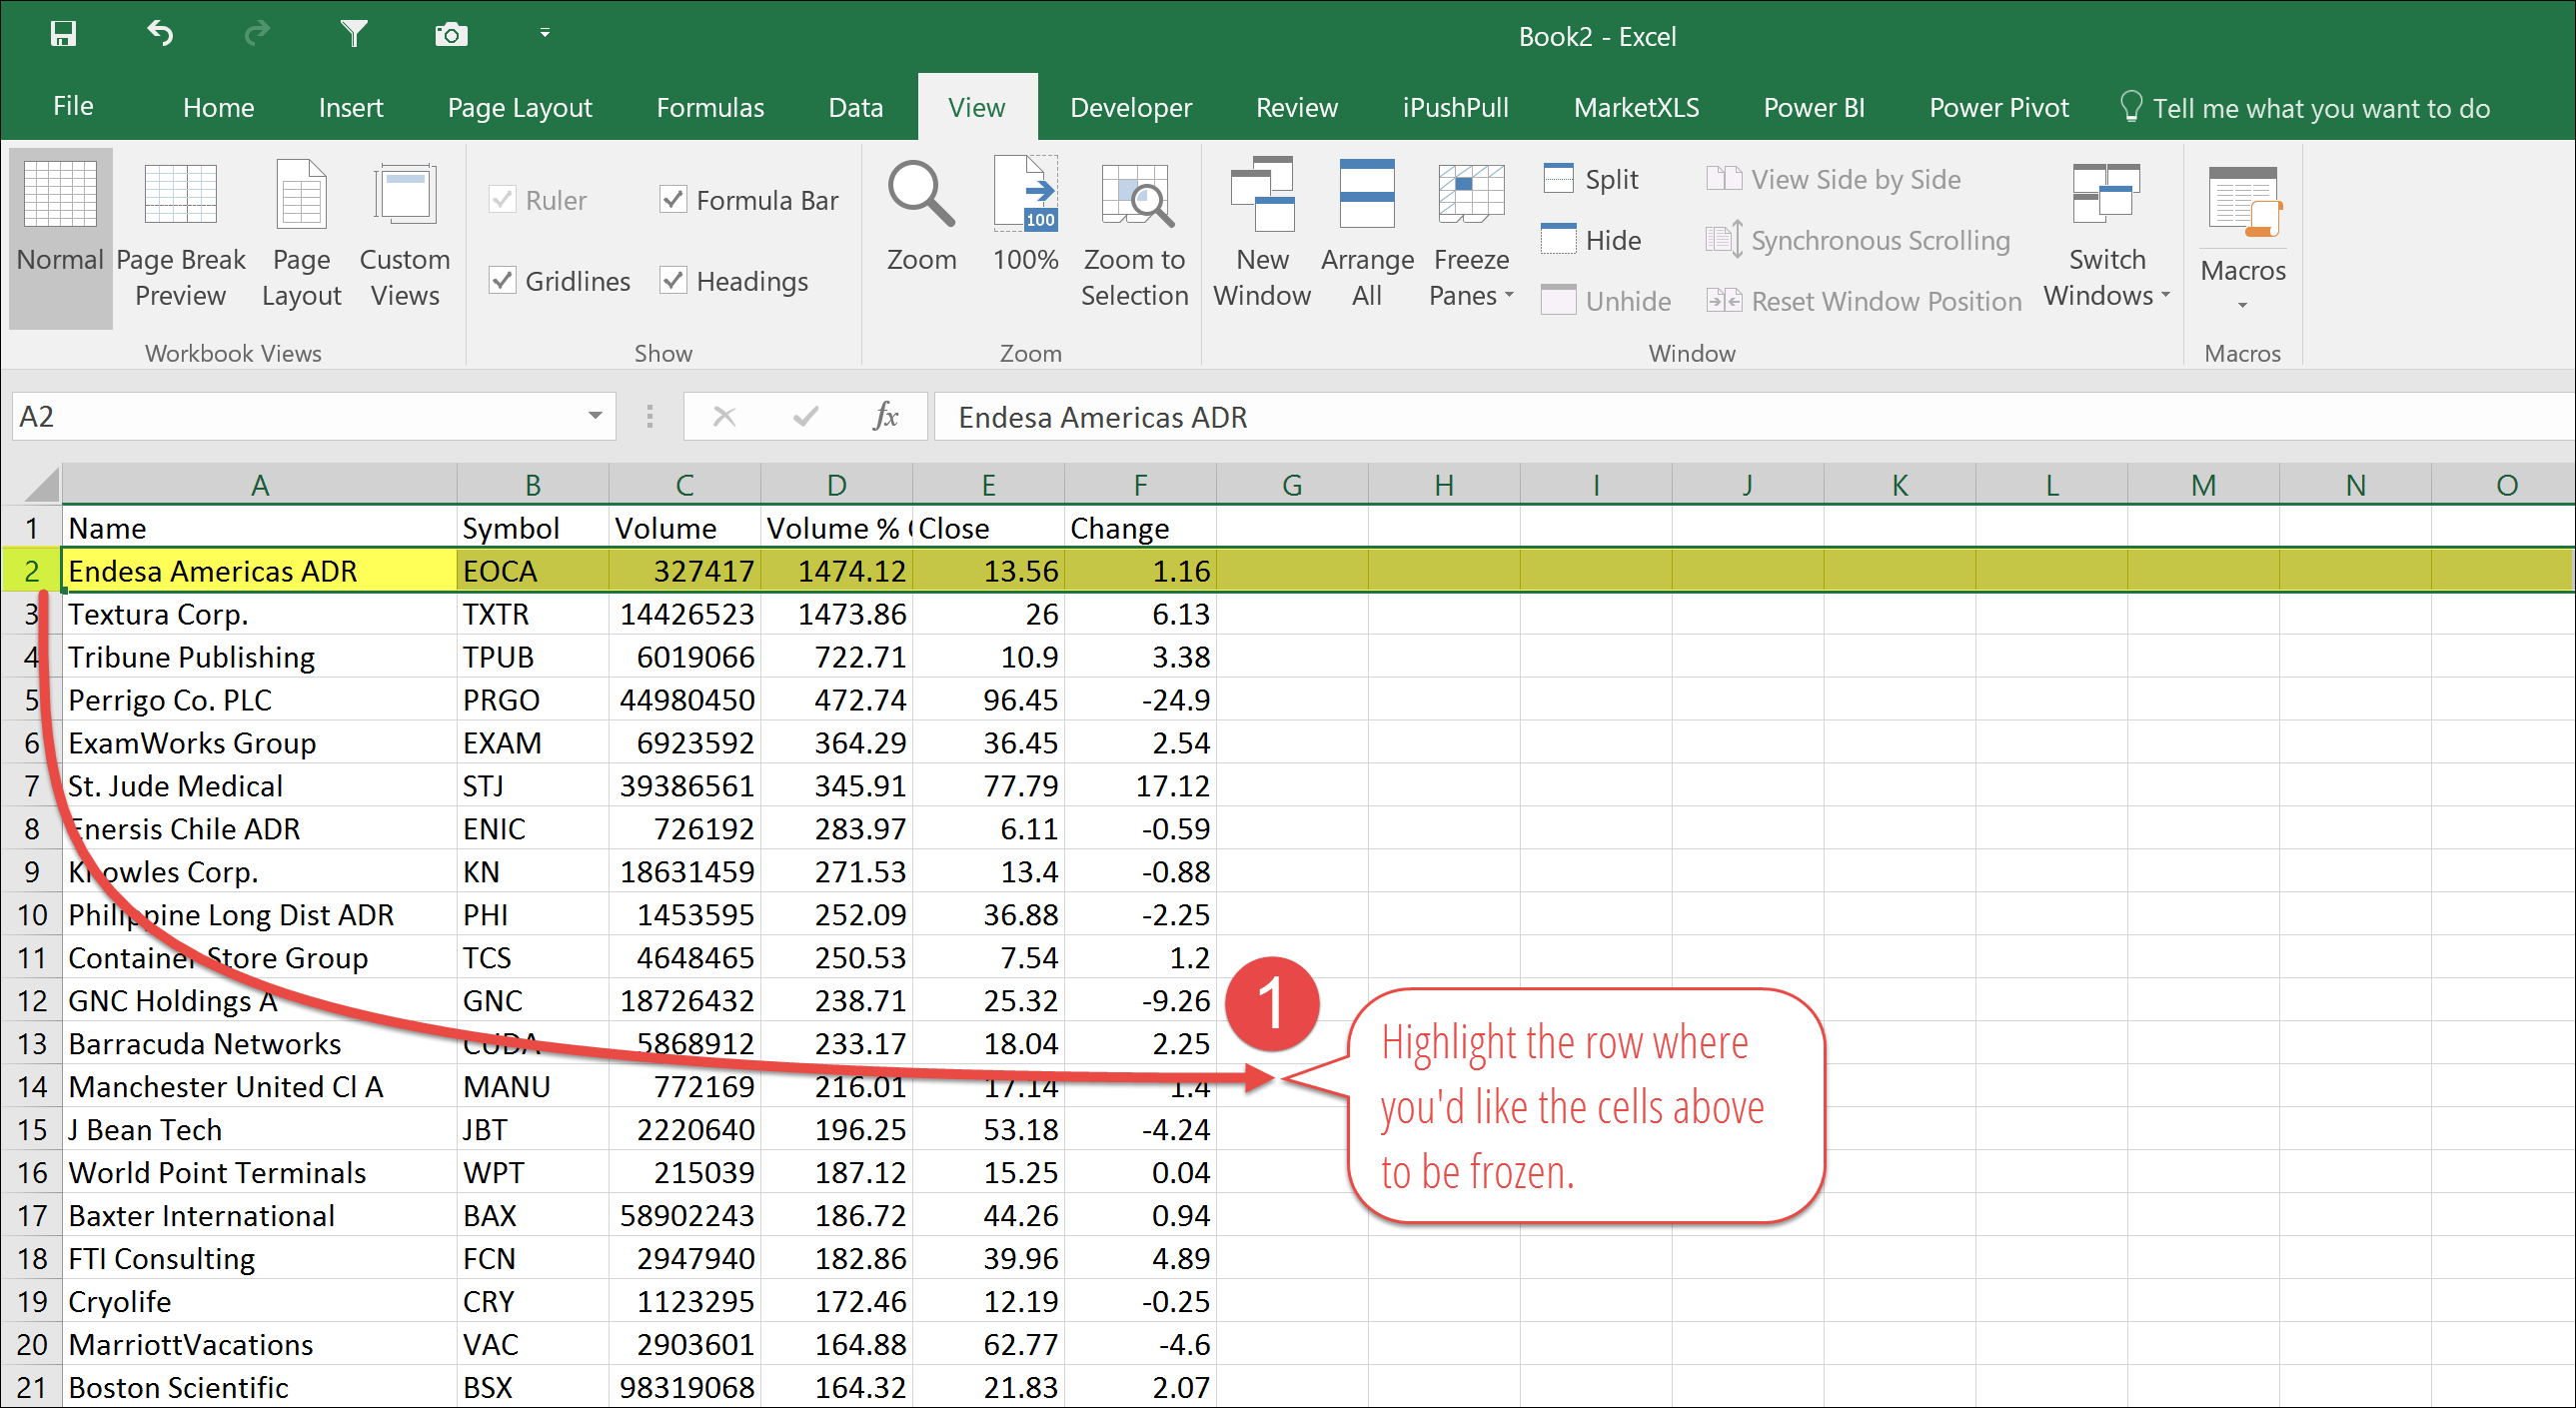 how to delete rows in excel 2010